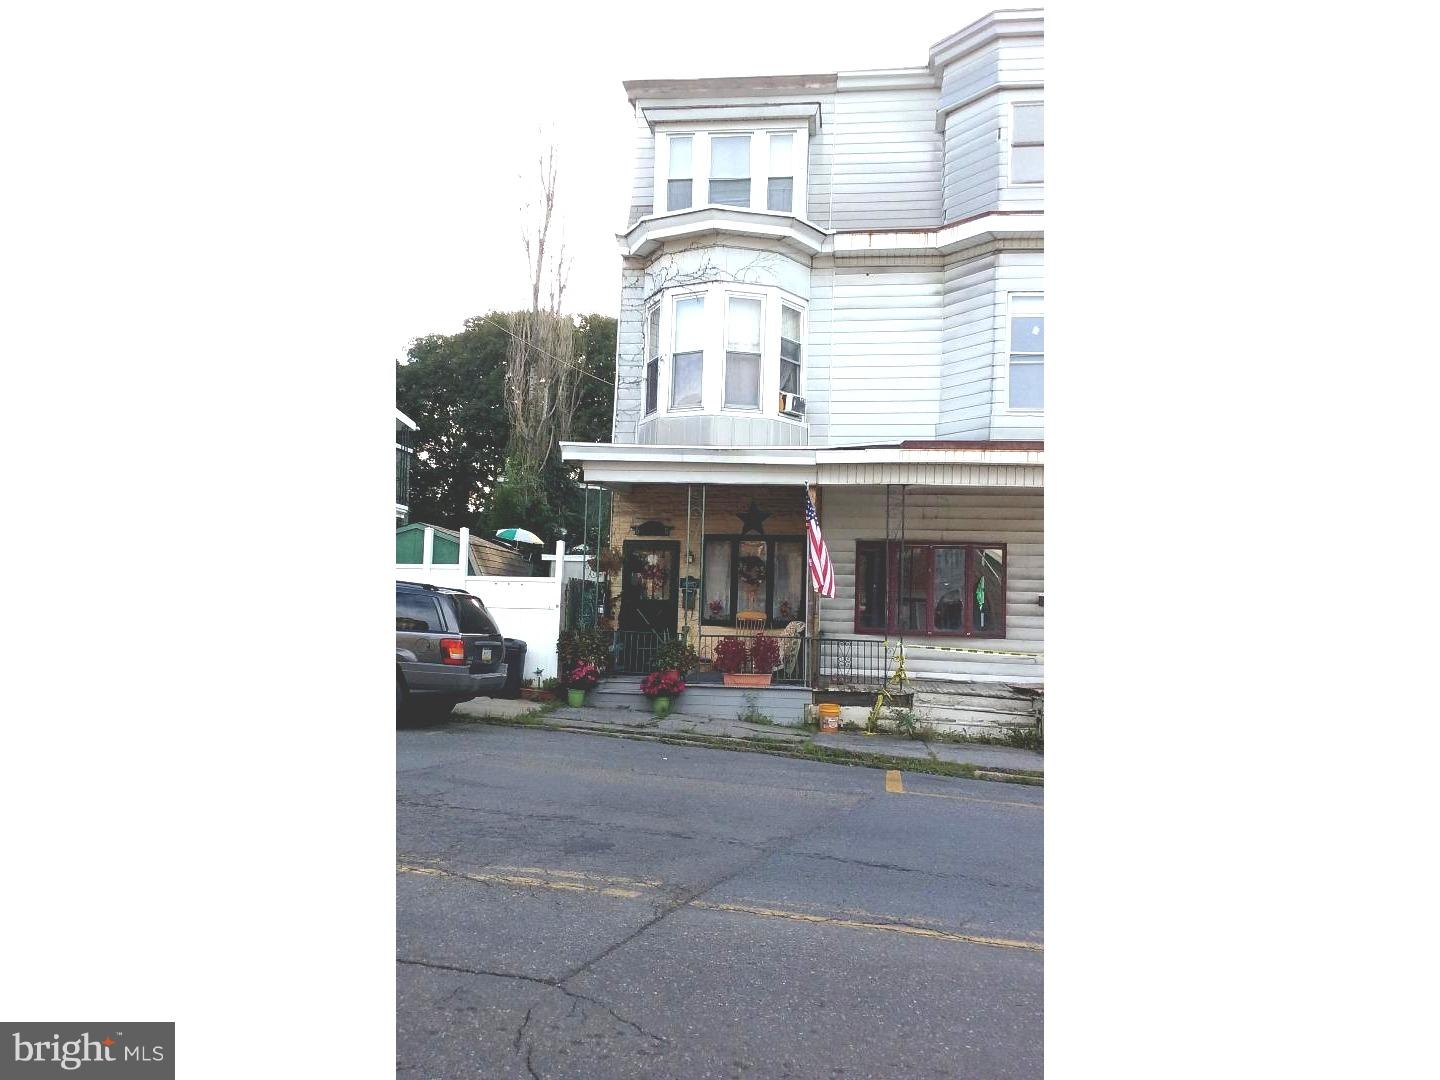 68 S MAIN, MAHANOY CITY, PA 17948